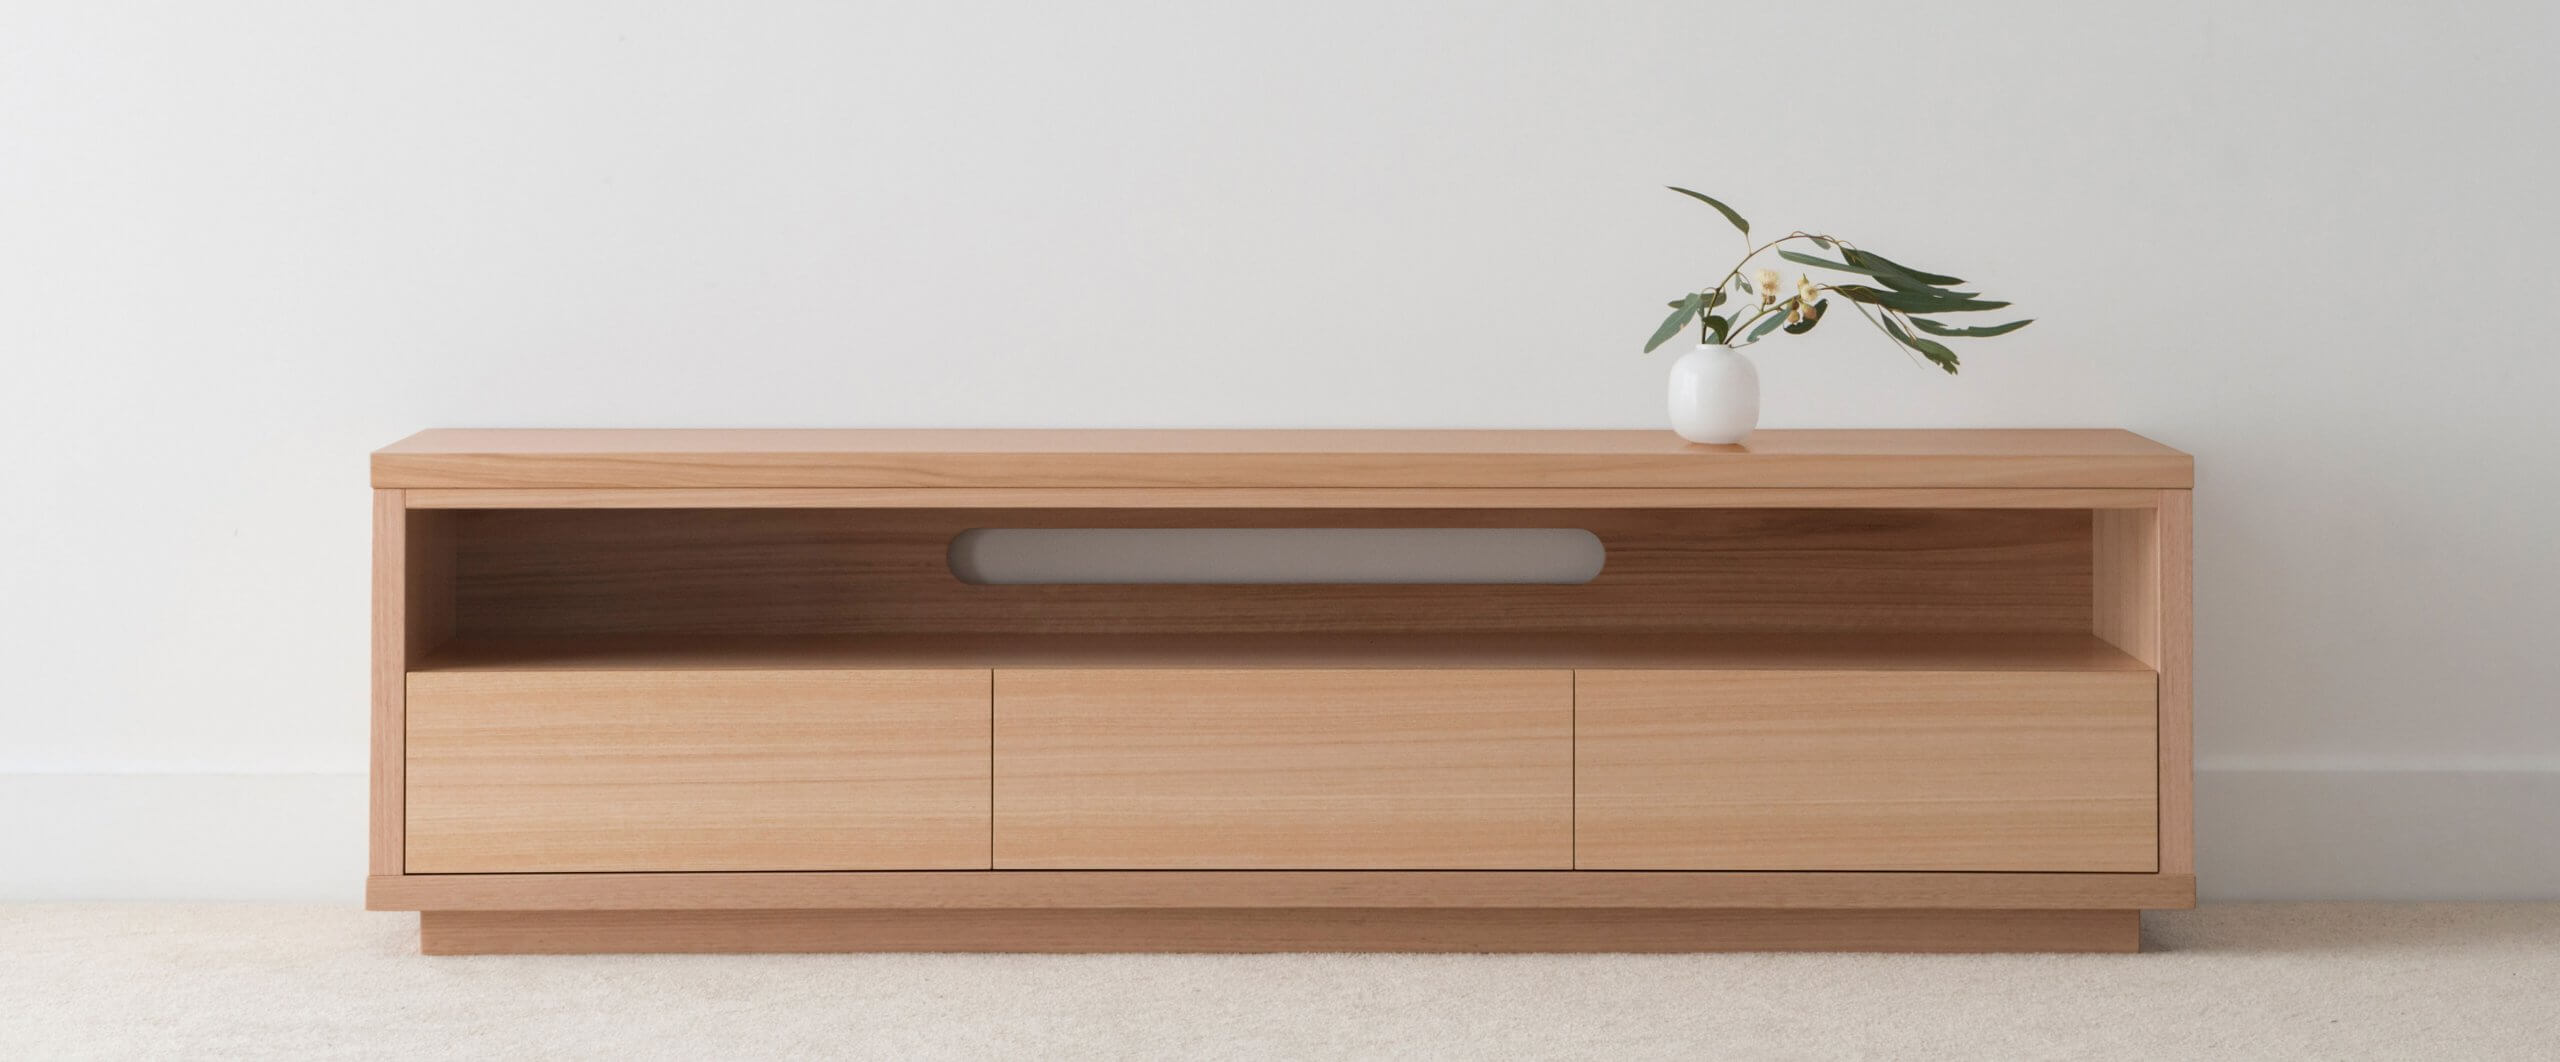 custom tv entertainment unit made from solid timber